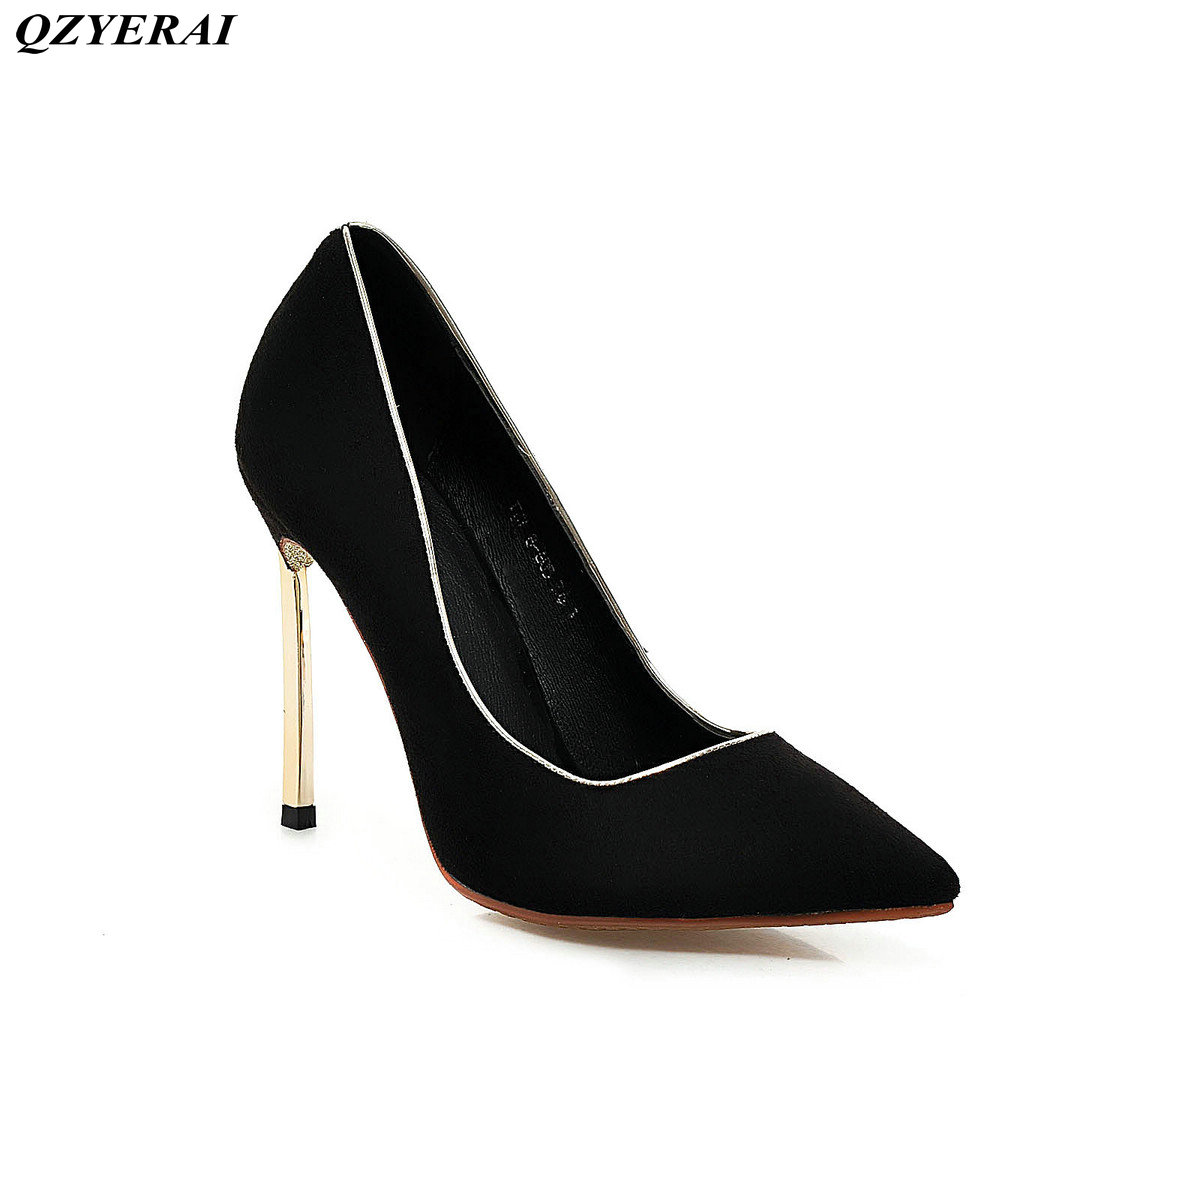 QZYERAI New metal high heel font b women s b font single font b shoes b